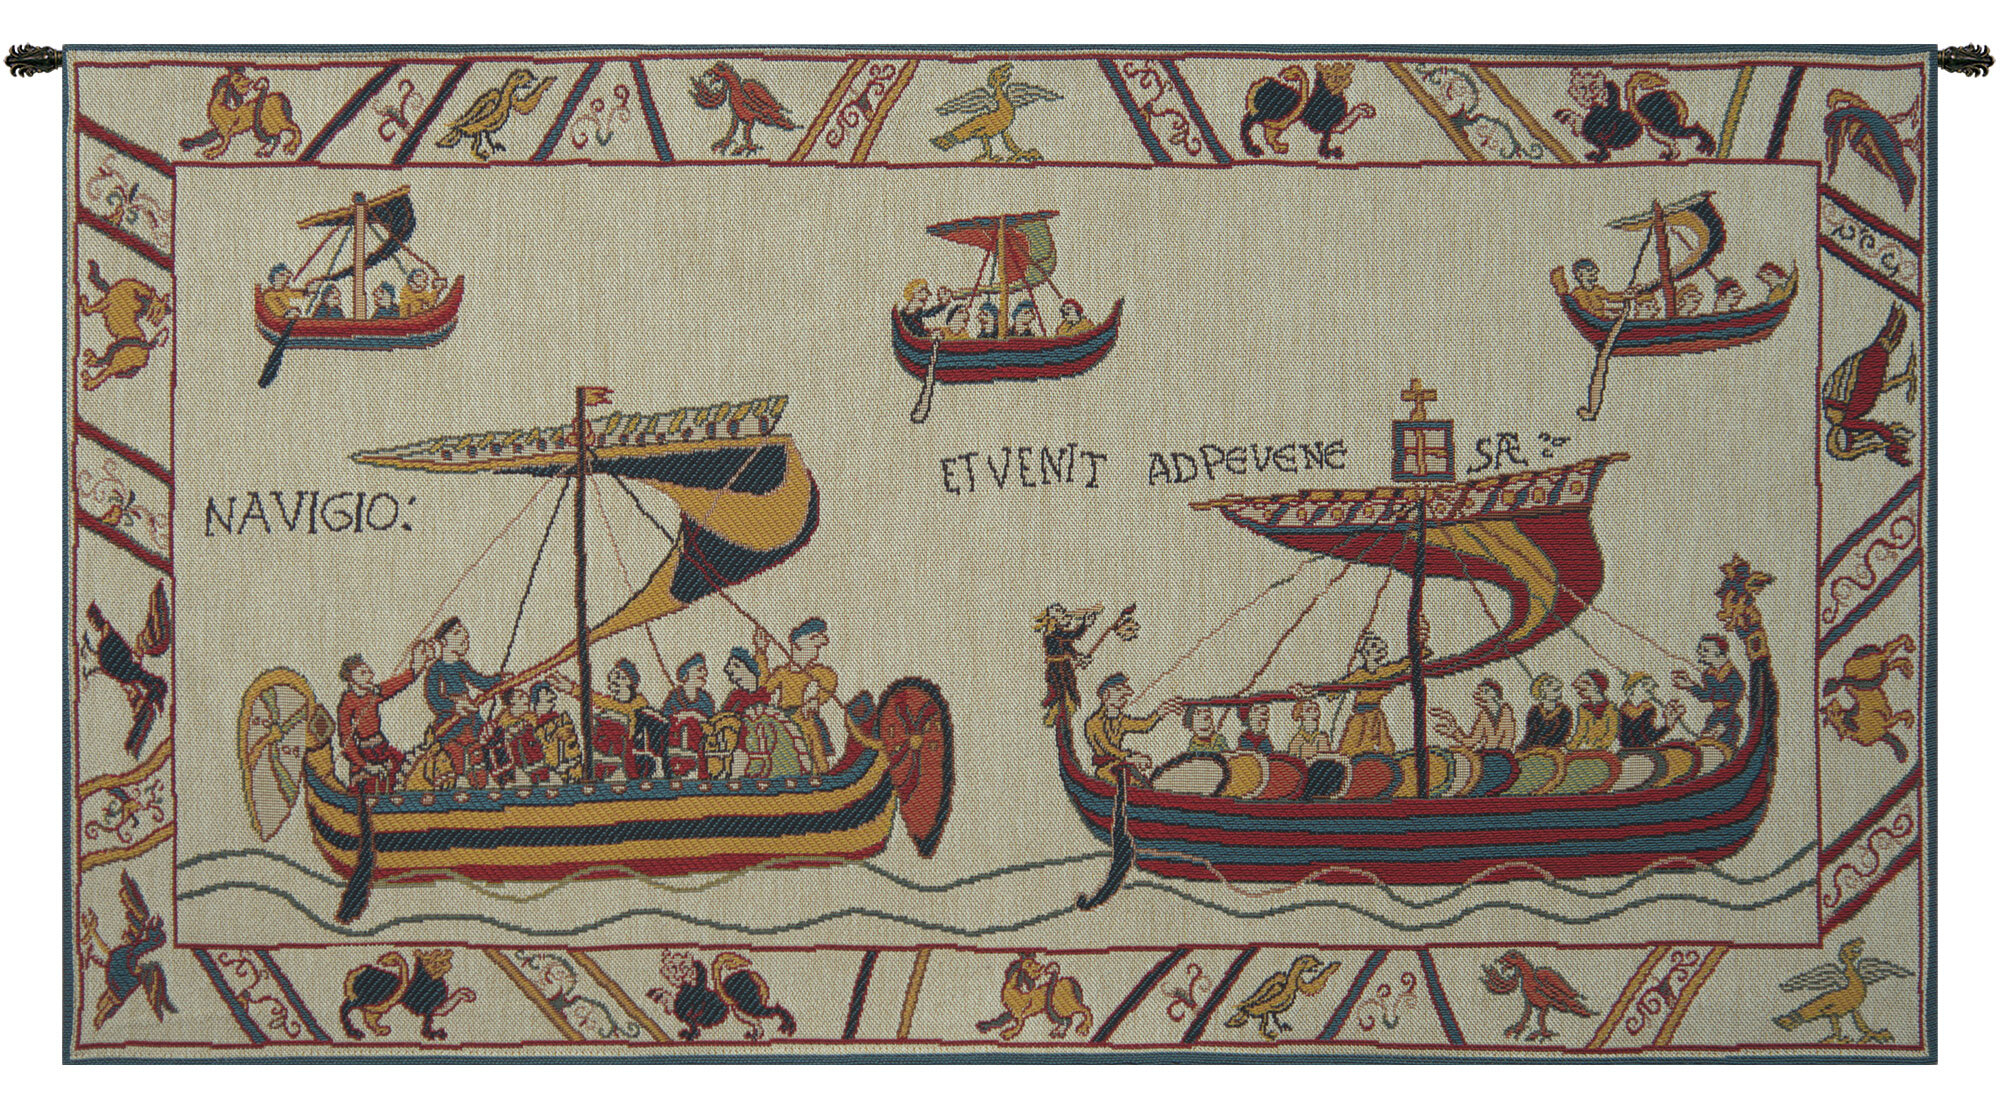 Blended Fabric Les Normands The Norman Fleet Tapestry Inside Current Blended Fabric In His Tapestries And Wall Hangings (View 13 of 20)